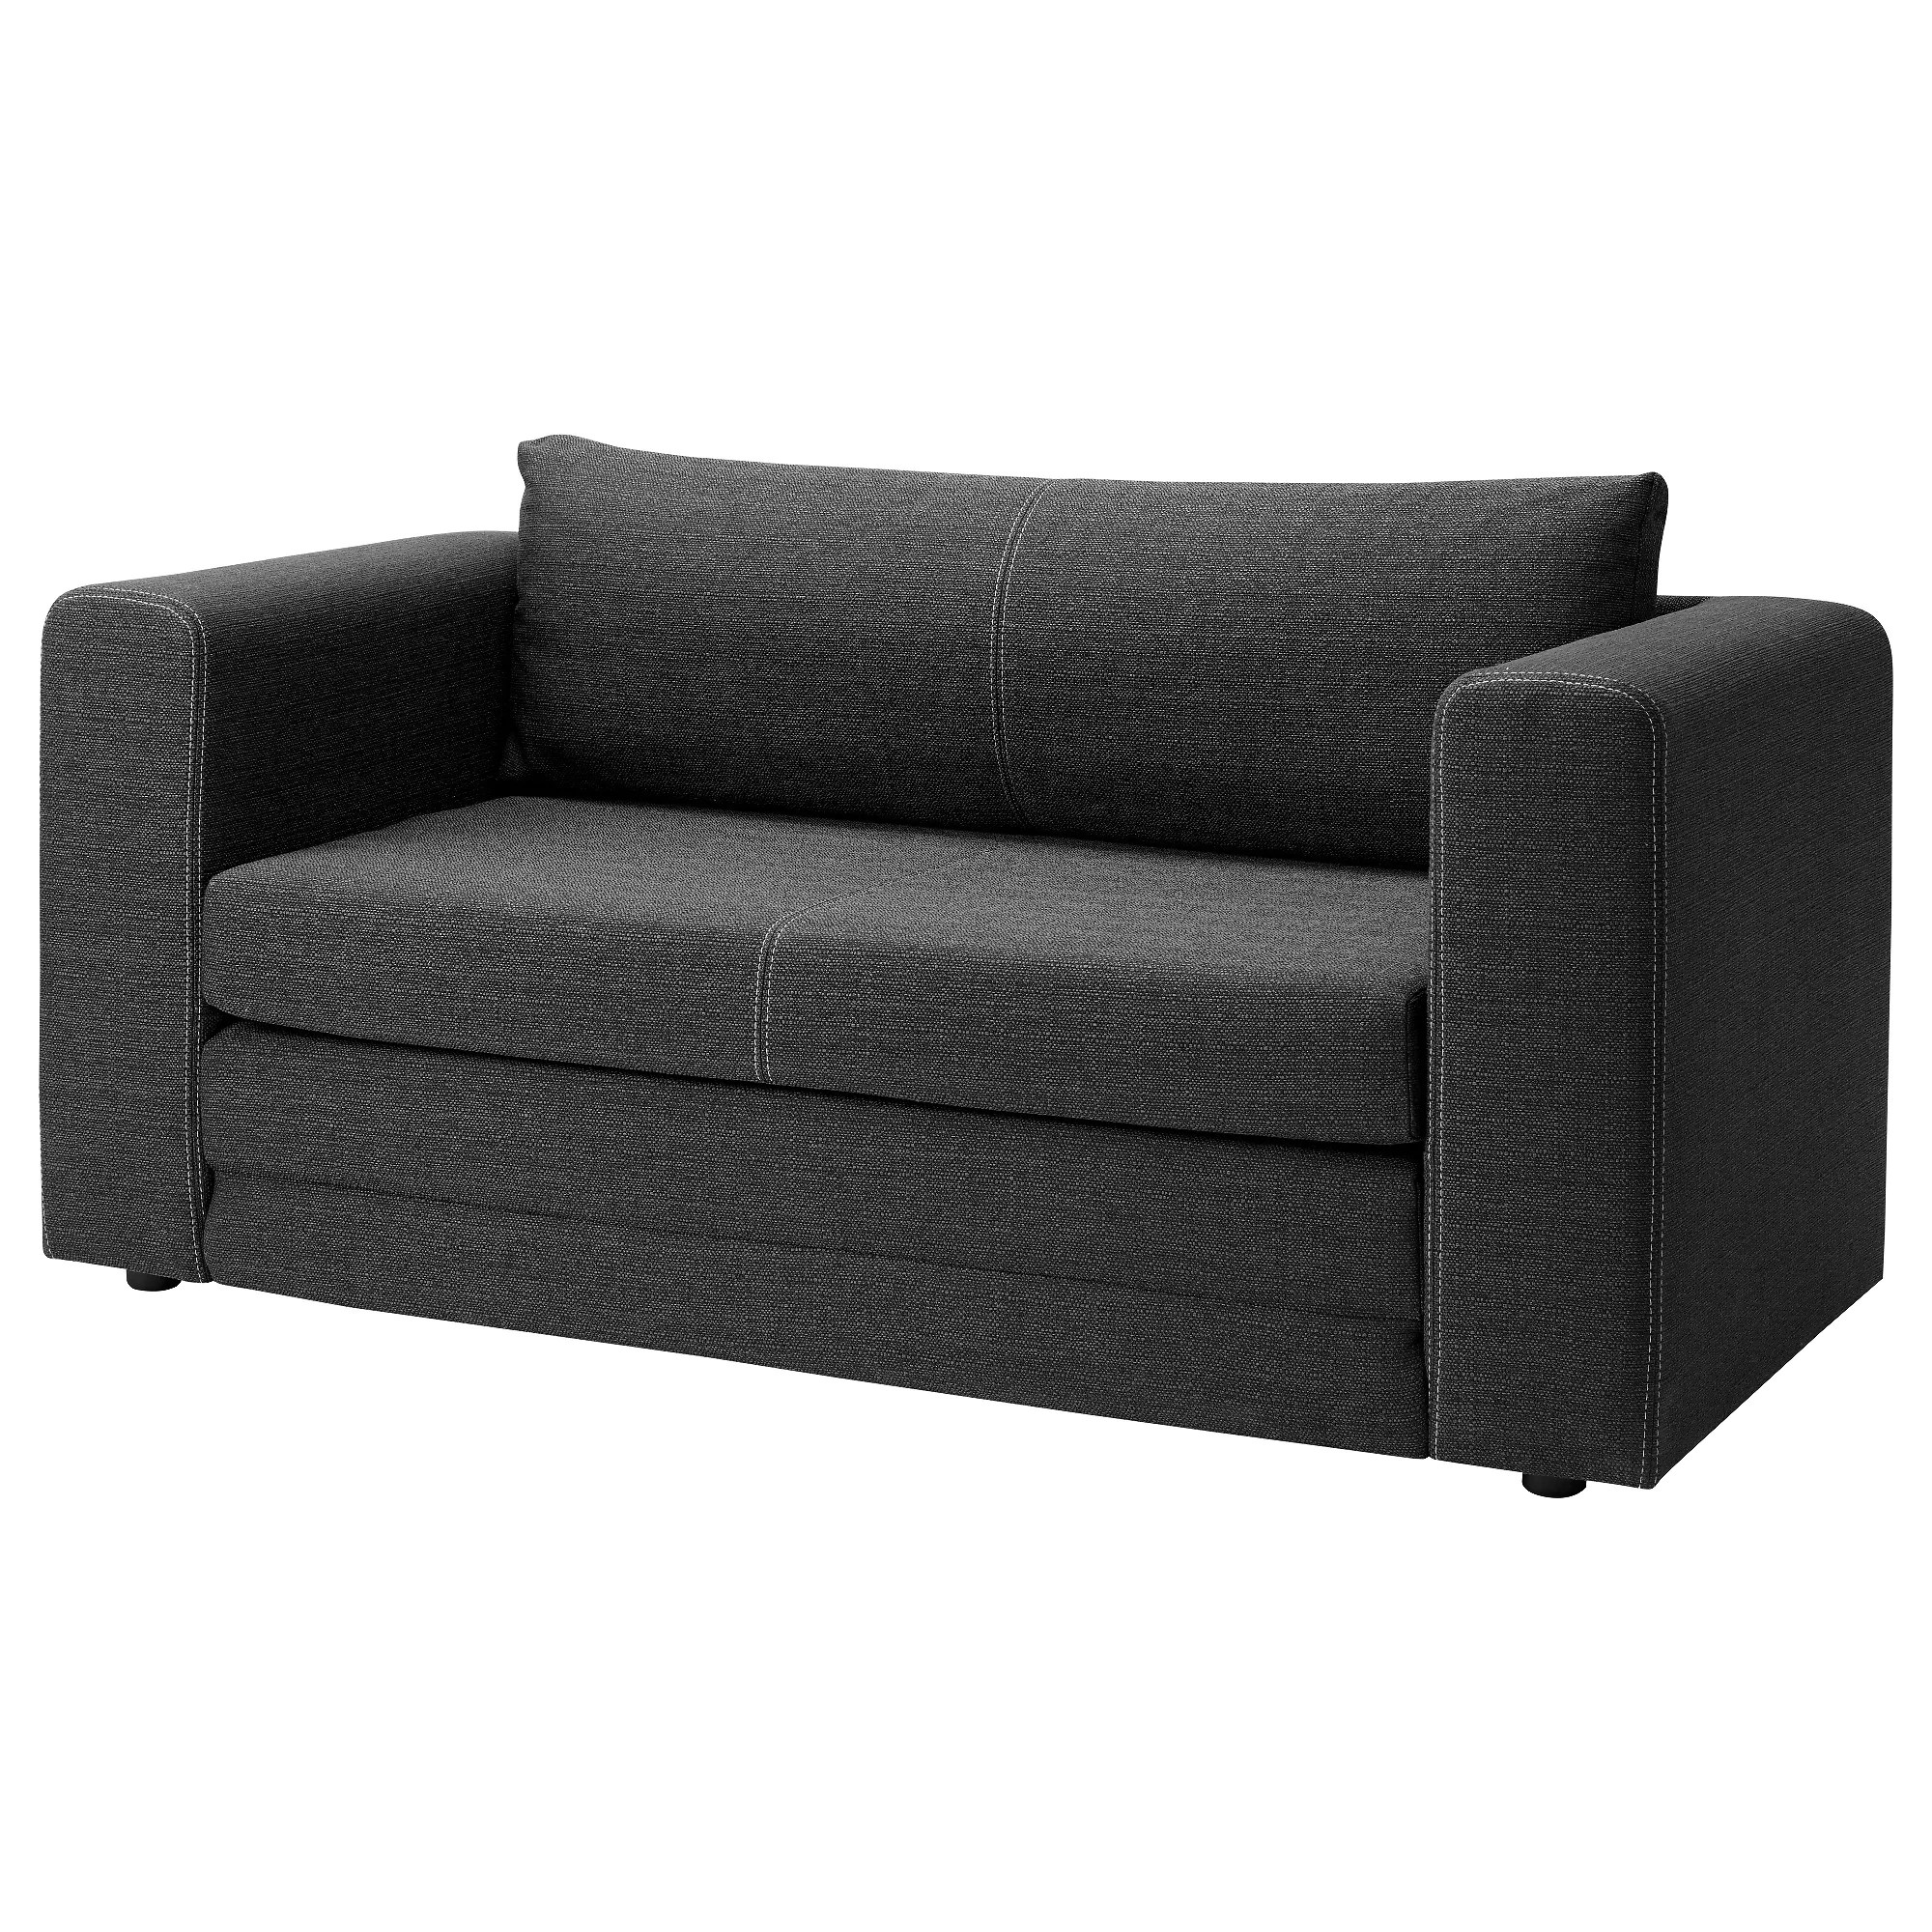 Bettsofa Hagalund 2er Bettsofa Askeby Grau